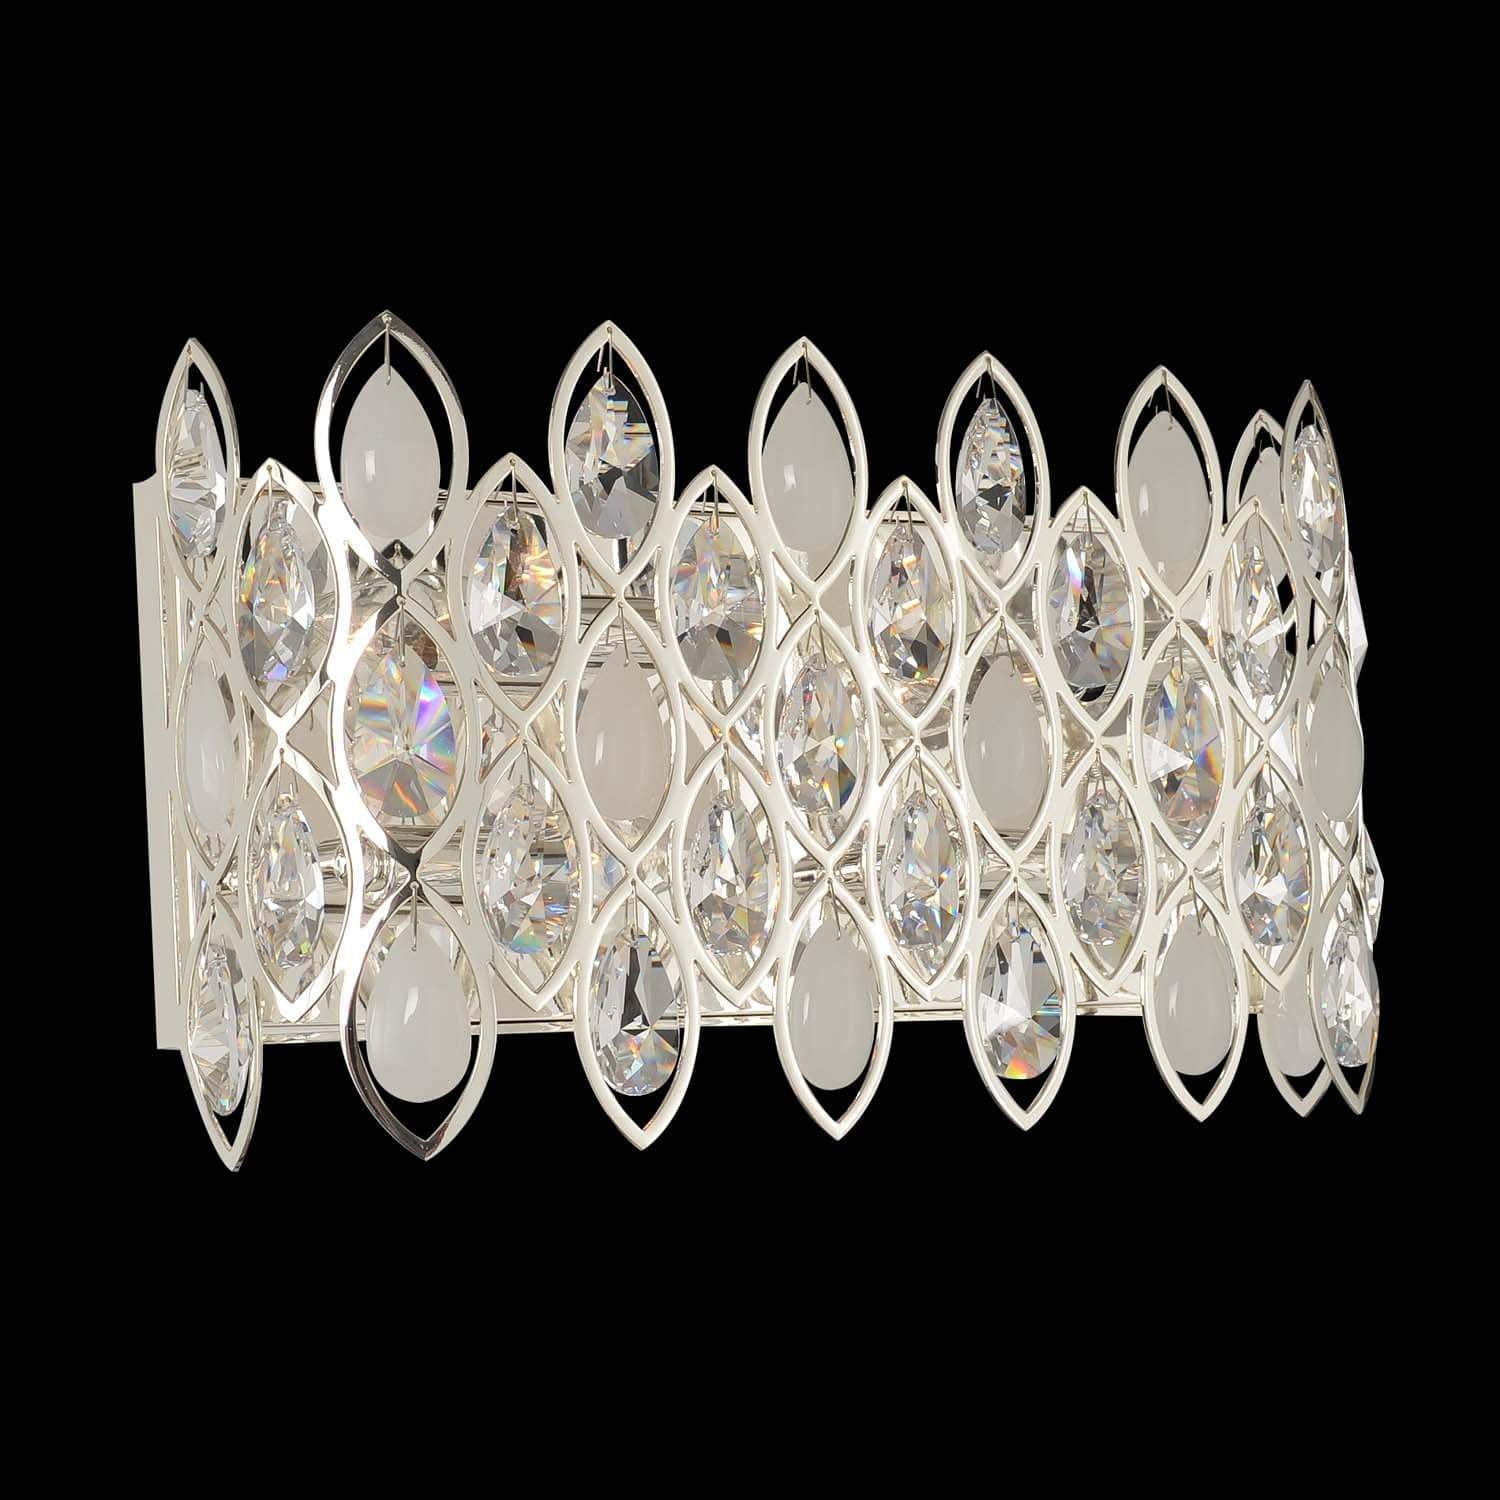 Allegri by Kalco Lighting Wall Sconces Silver / Firenze Clear Prive 16 Inch Bath Light From Allegri by Kalco Lighting 028722